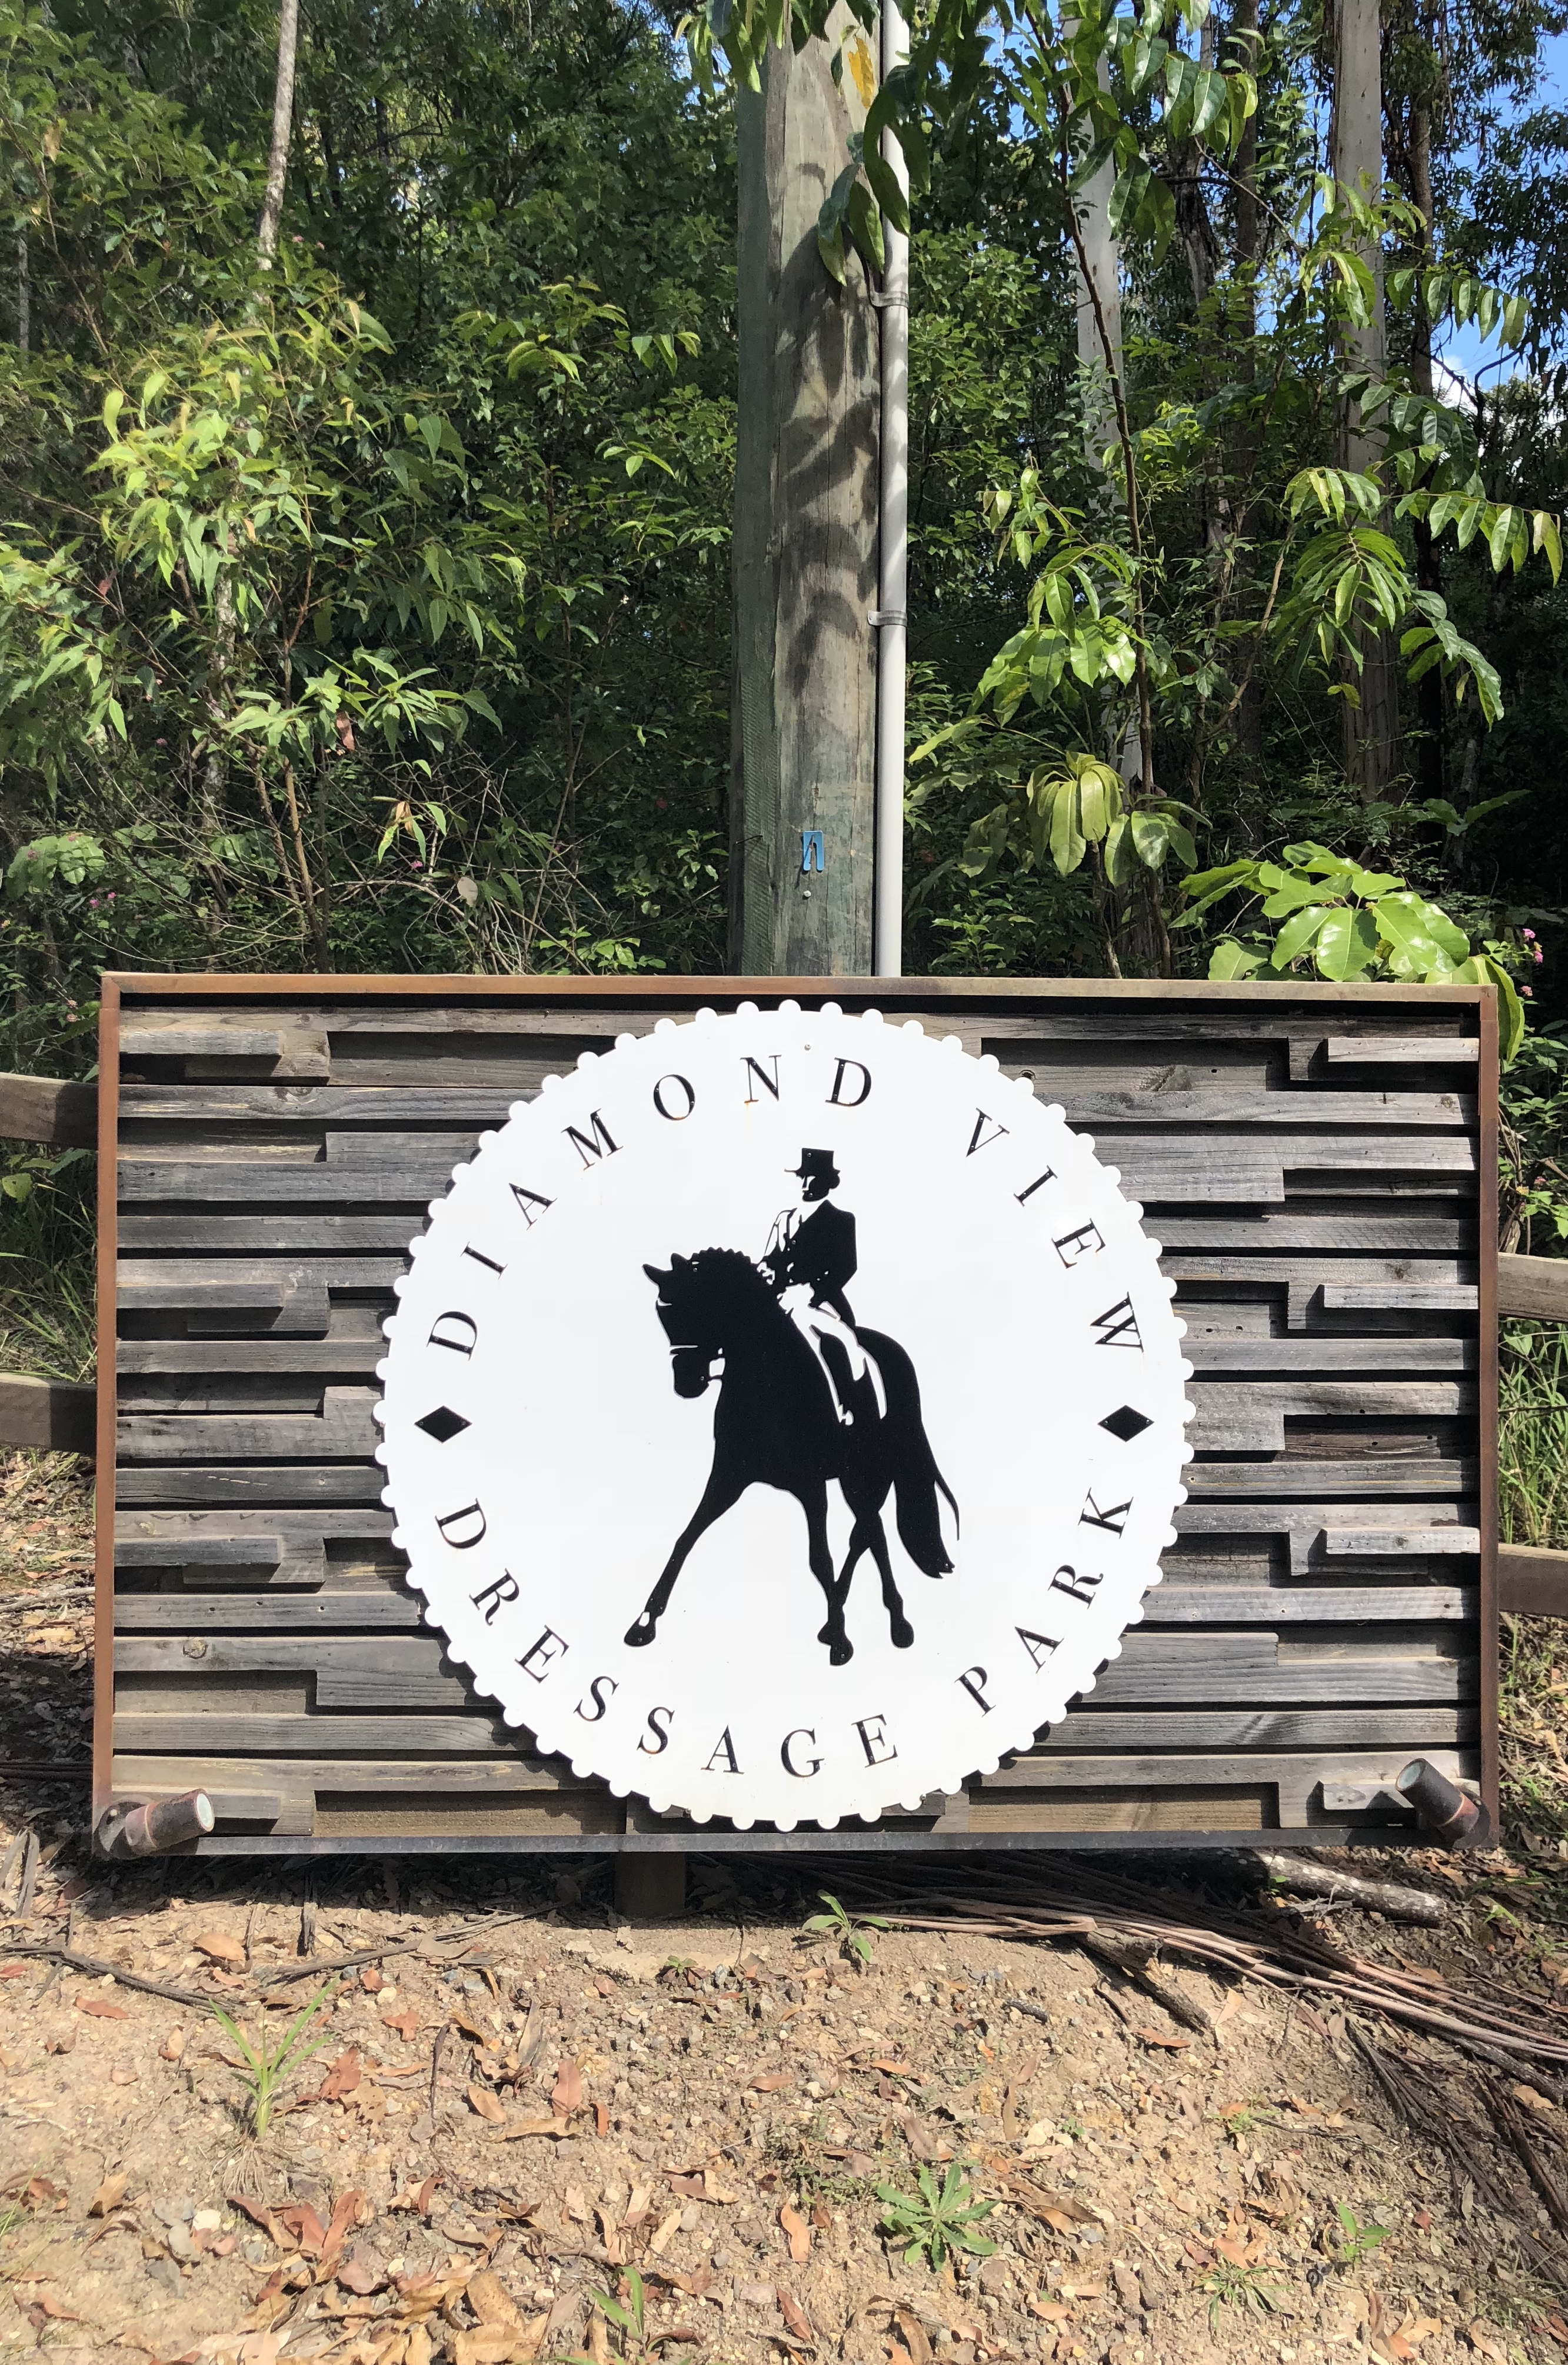 The entry to Diamond View Dressage Park - I have a plan to take lesson with Danielle this weekend